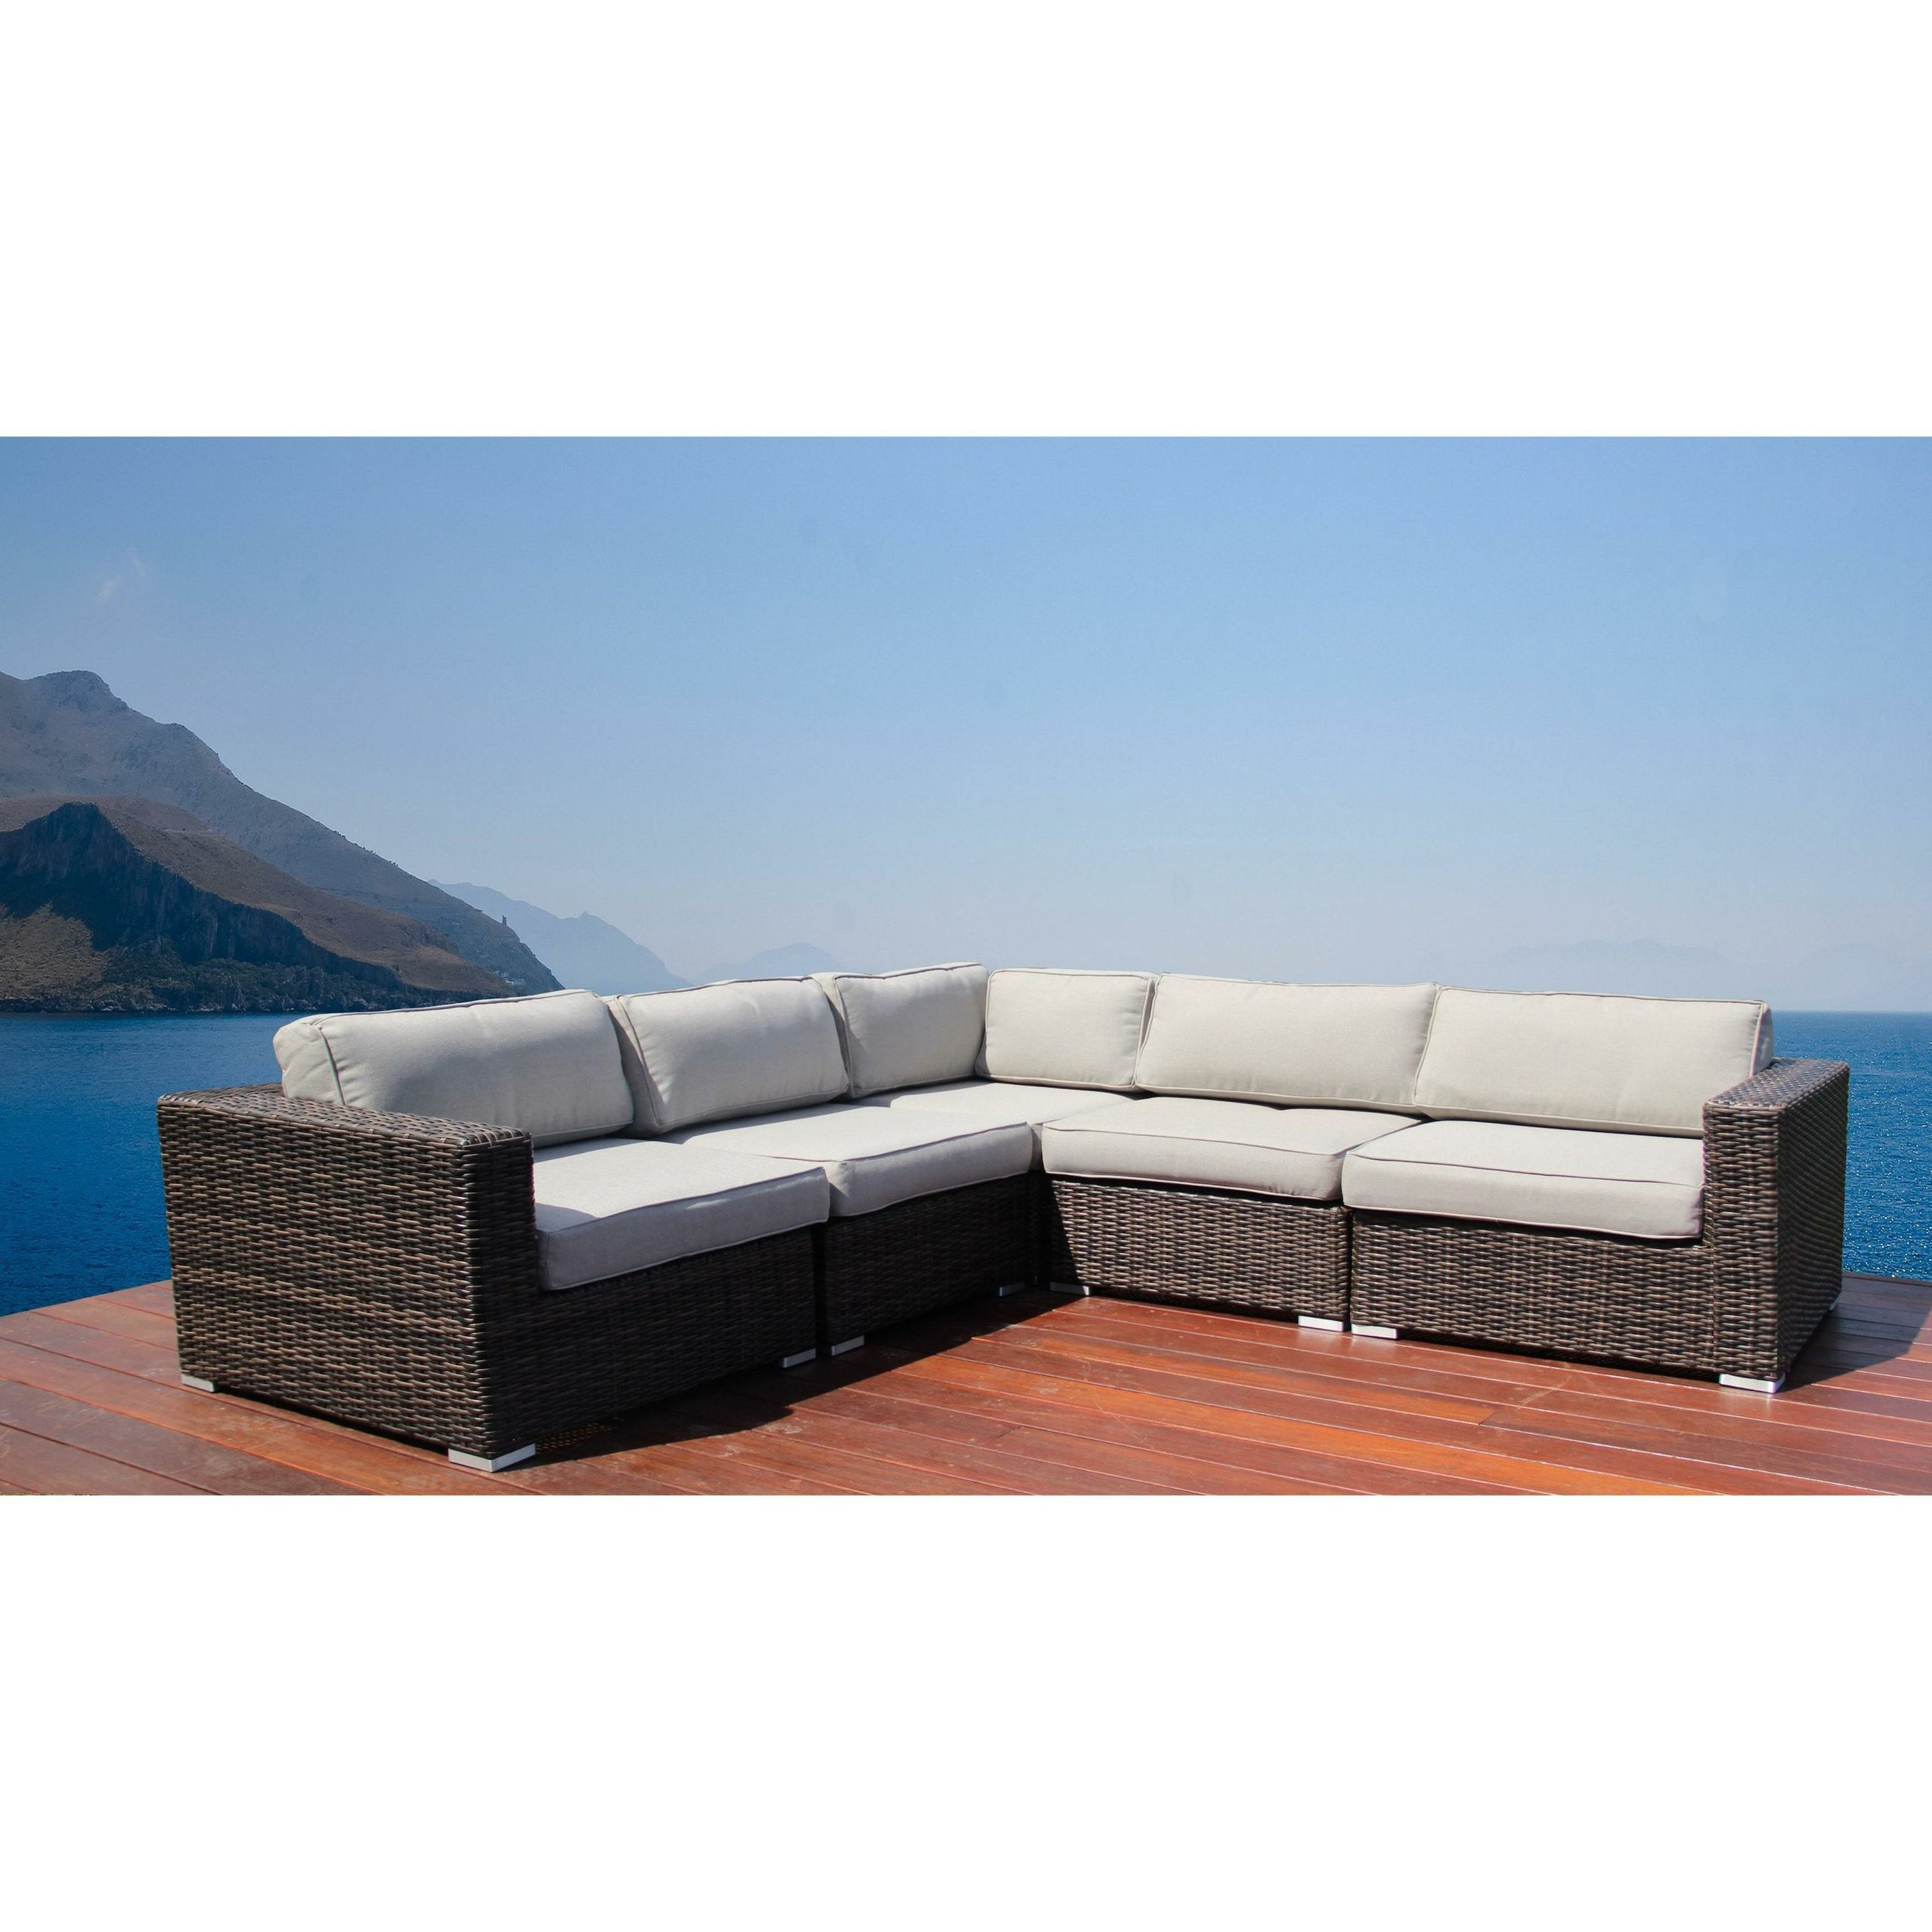 Famous Ostrowski Patio Sectionals With Cushions Throughout Nolen Patio Sectional With Cushions (View 8 of 25)